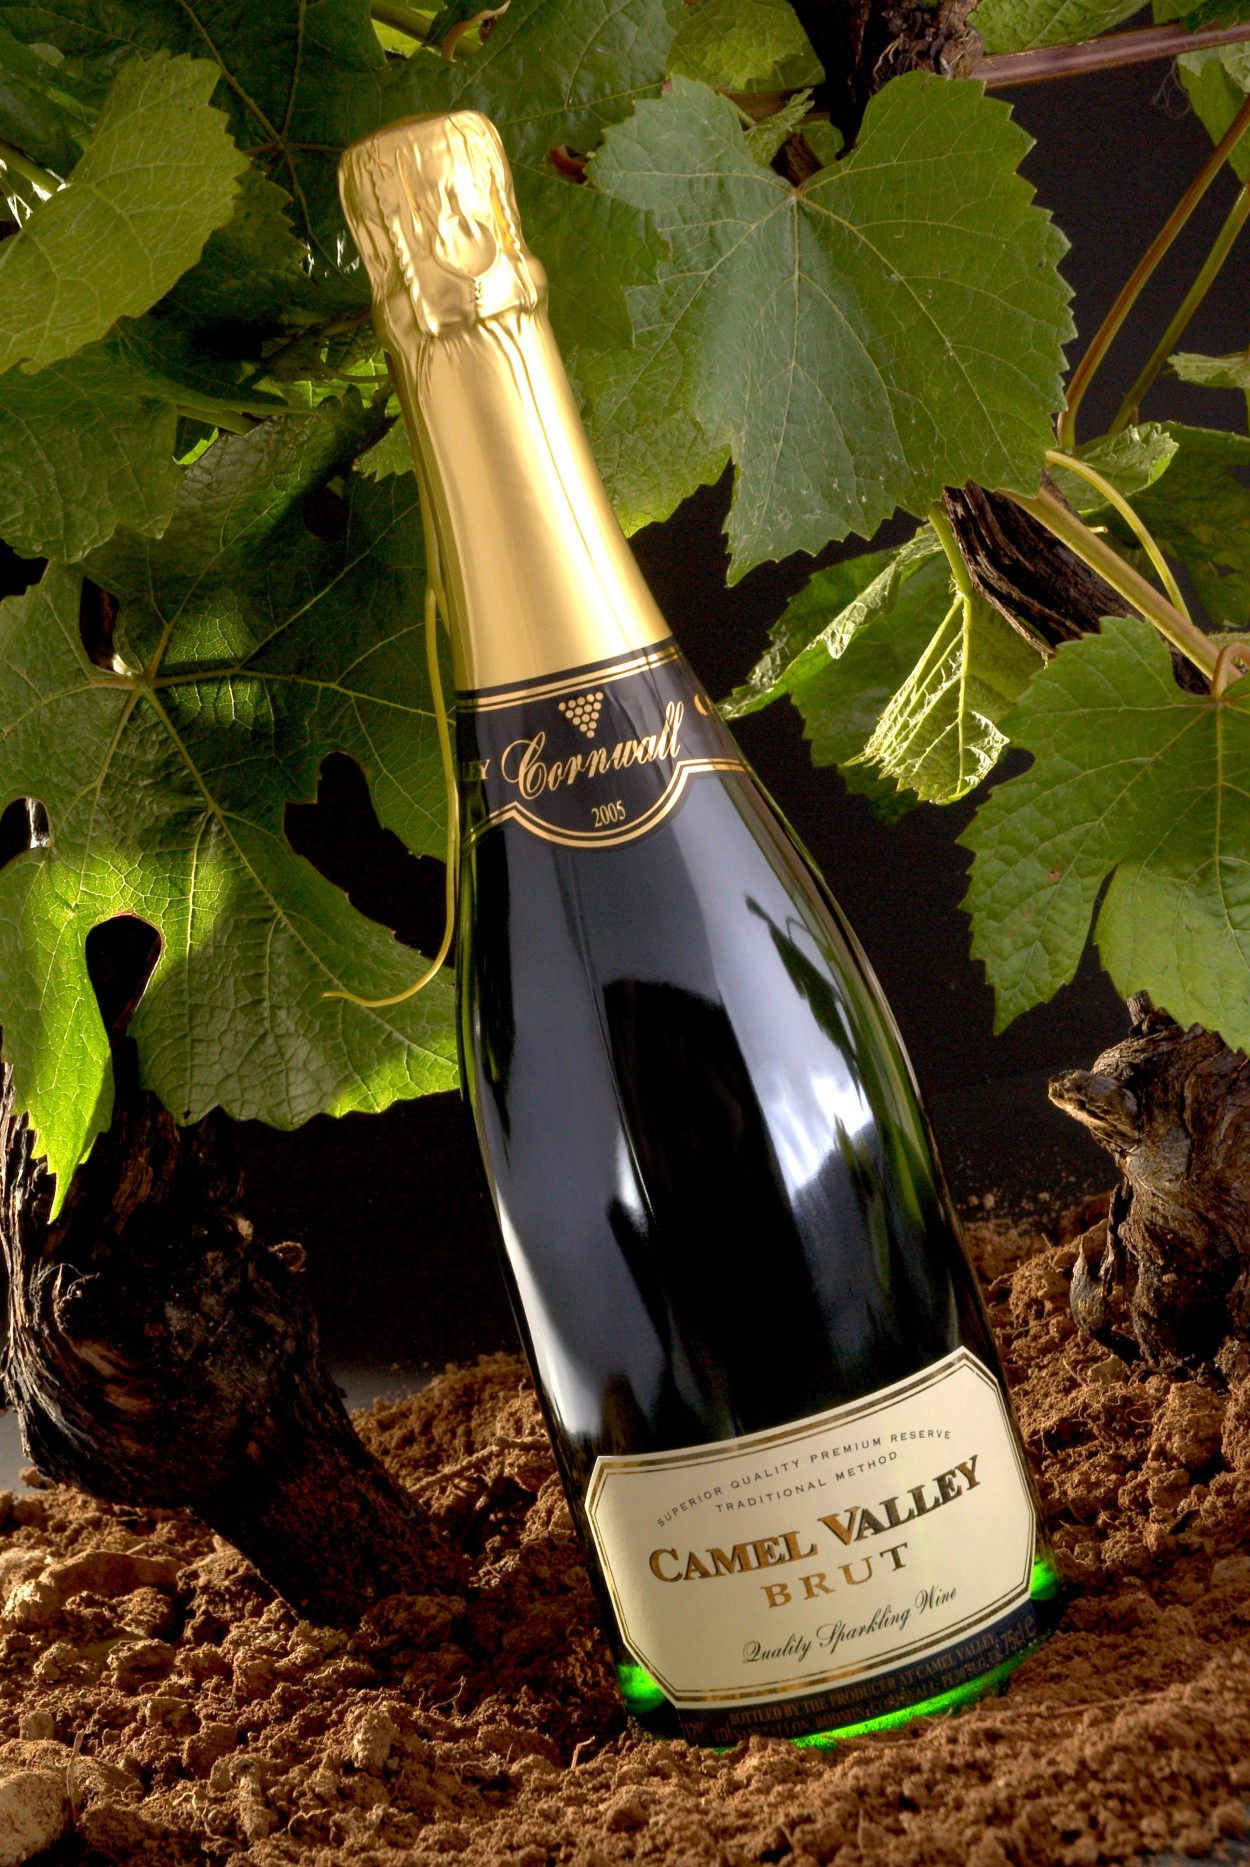 Camel Valley's Pinot Noir Rosé named favourite sparkling wine at UK's inaugural Fizz Festival